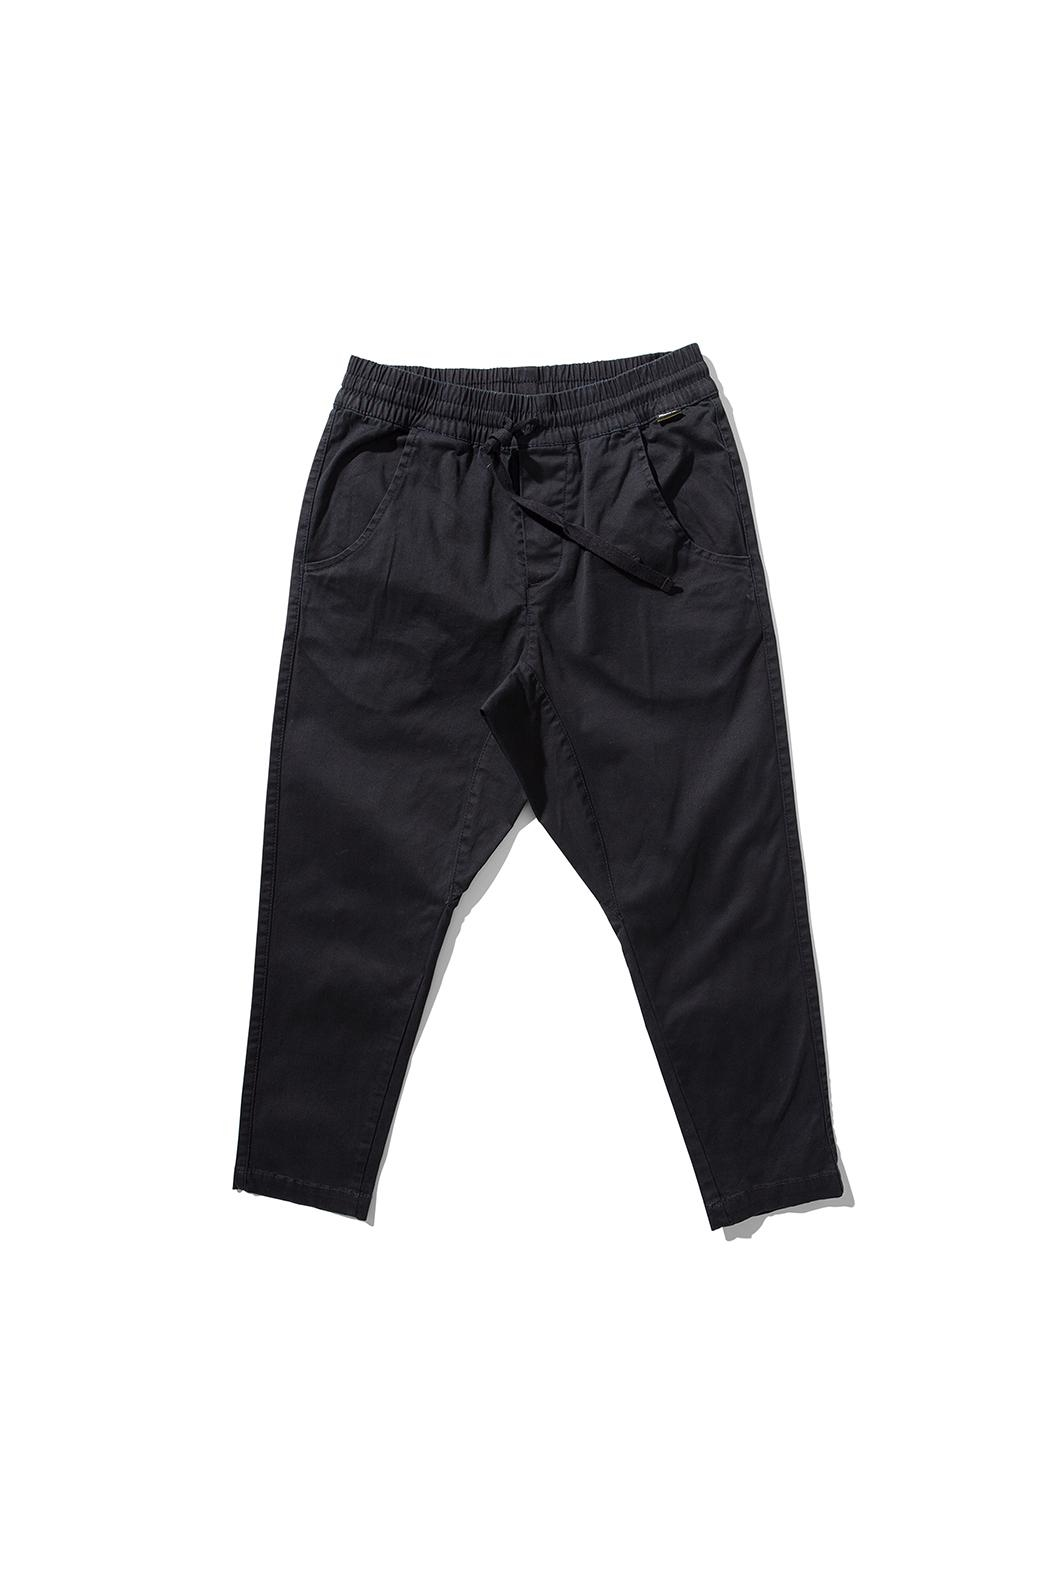 Munster Trestles Pants - Main Image